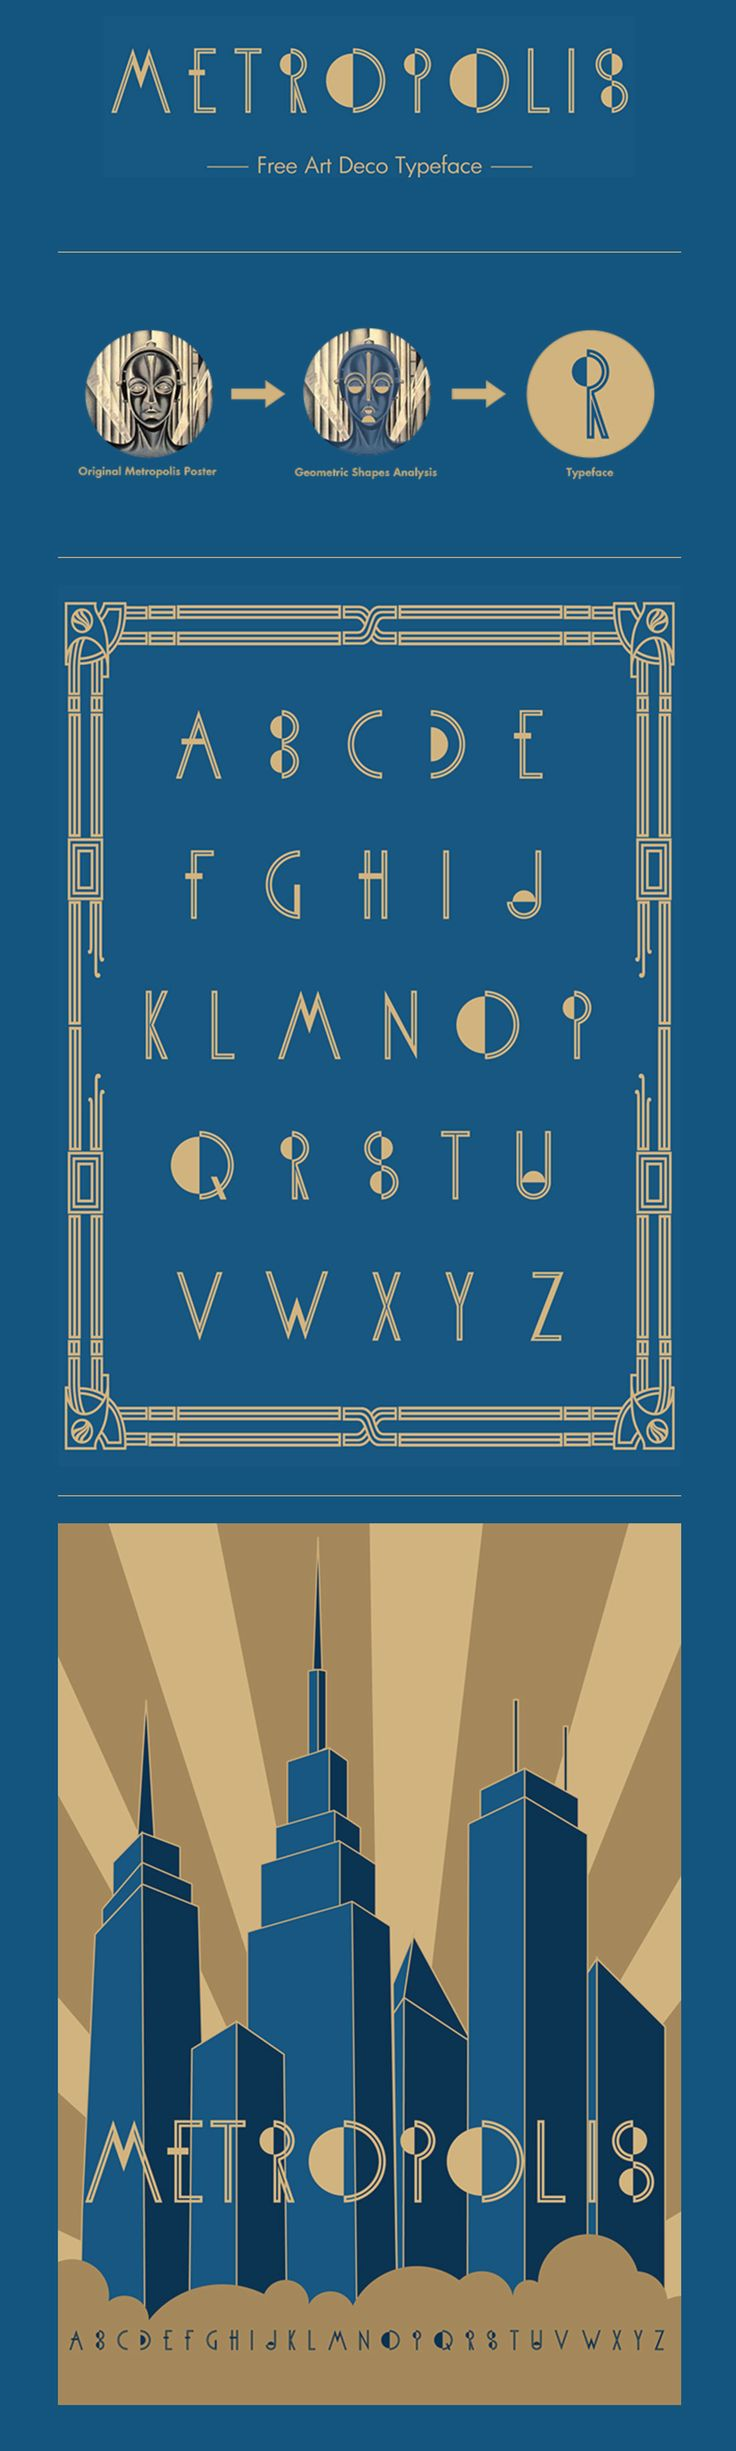 Is A Free Art Deco Typeface Inspired By The  Fritz Lang Film Metropolis And Designed By Kostas Hatzopoulos From Athens Greece Its Free To Use